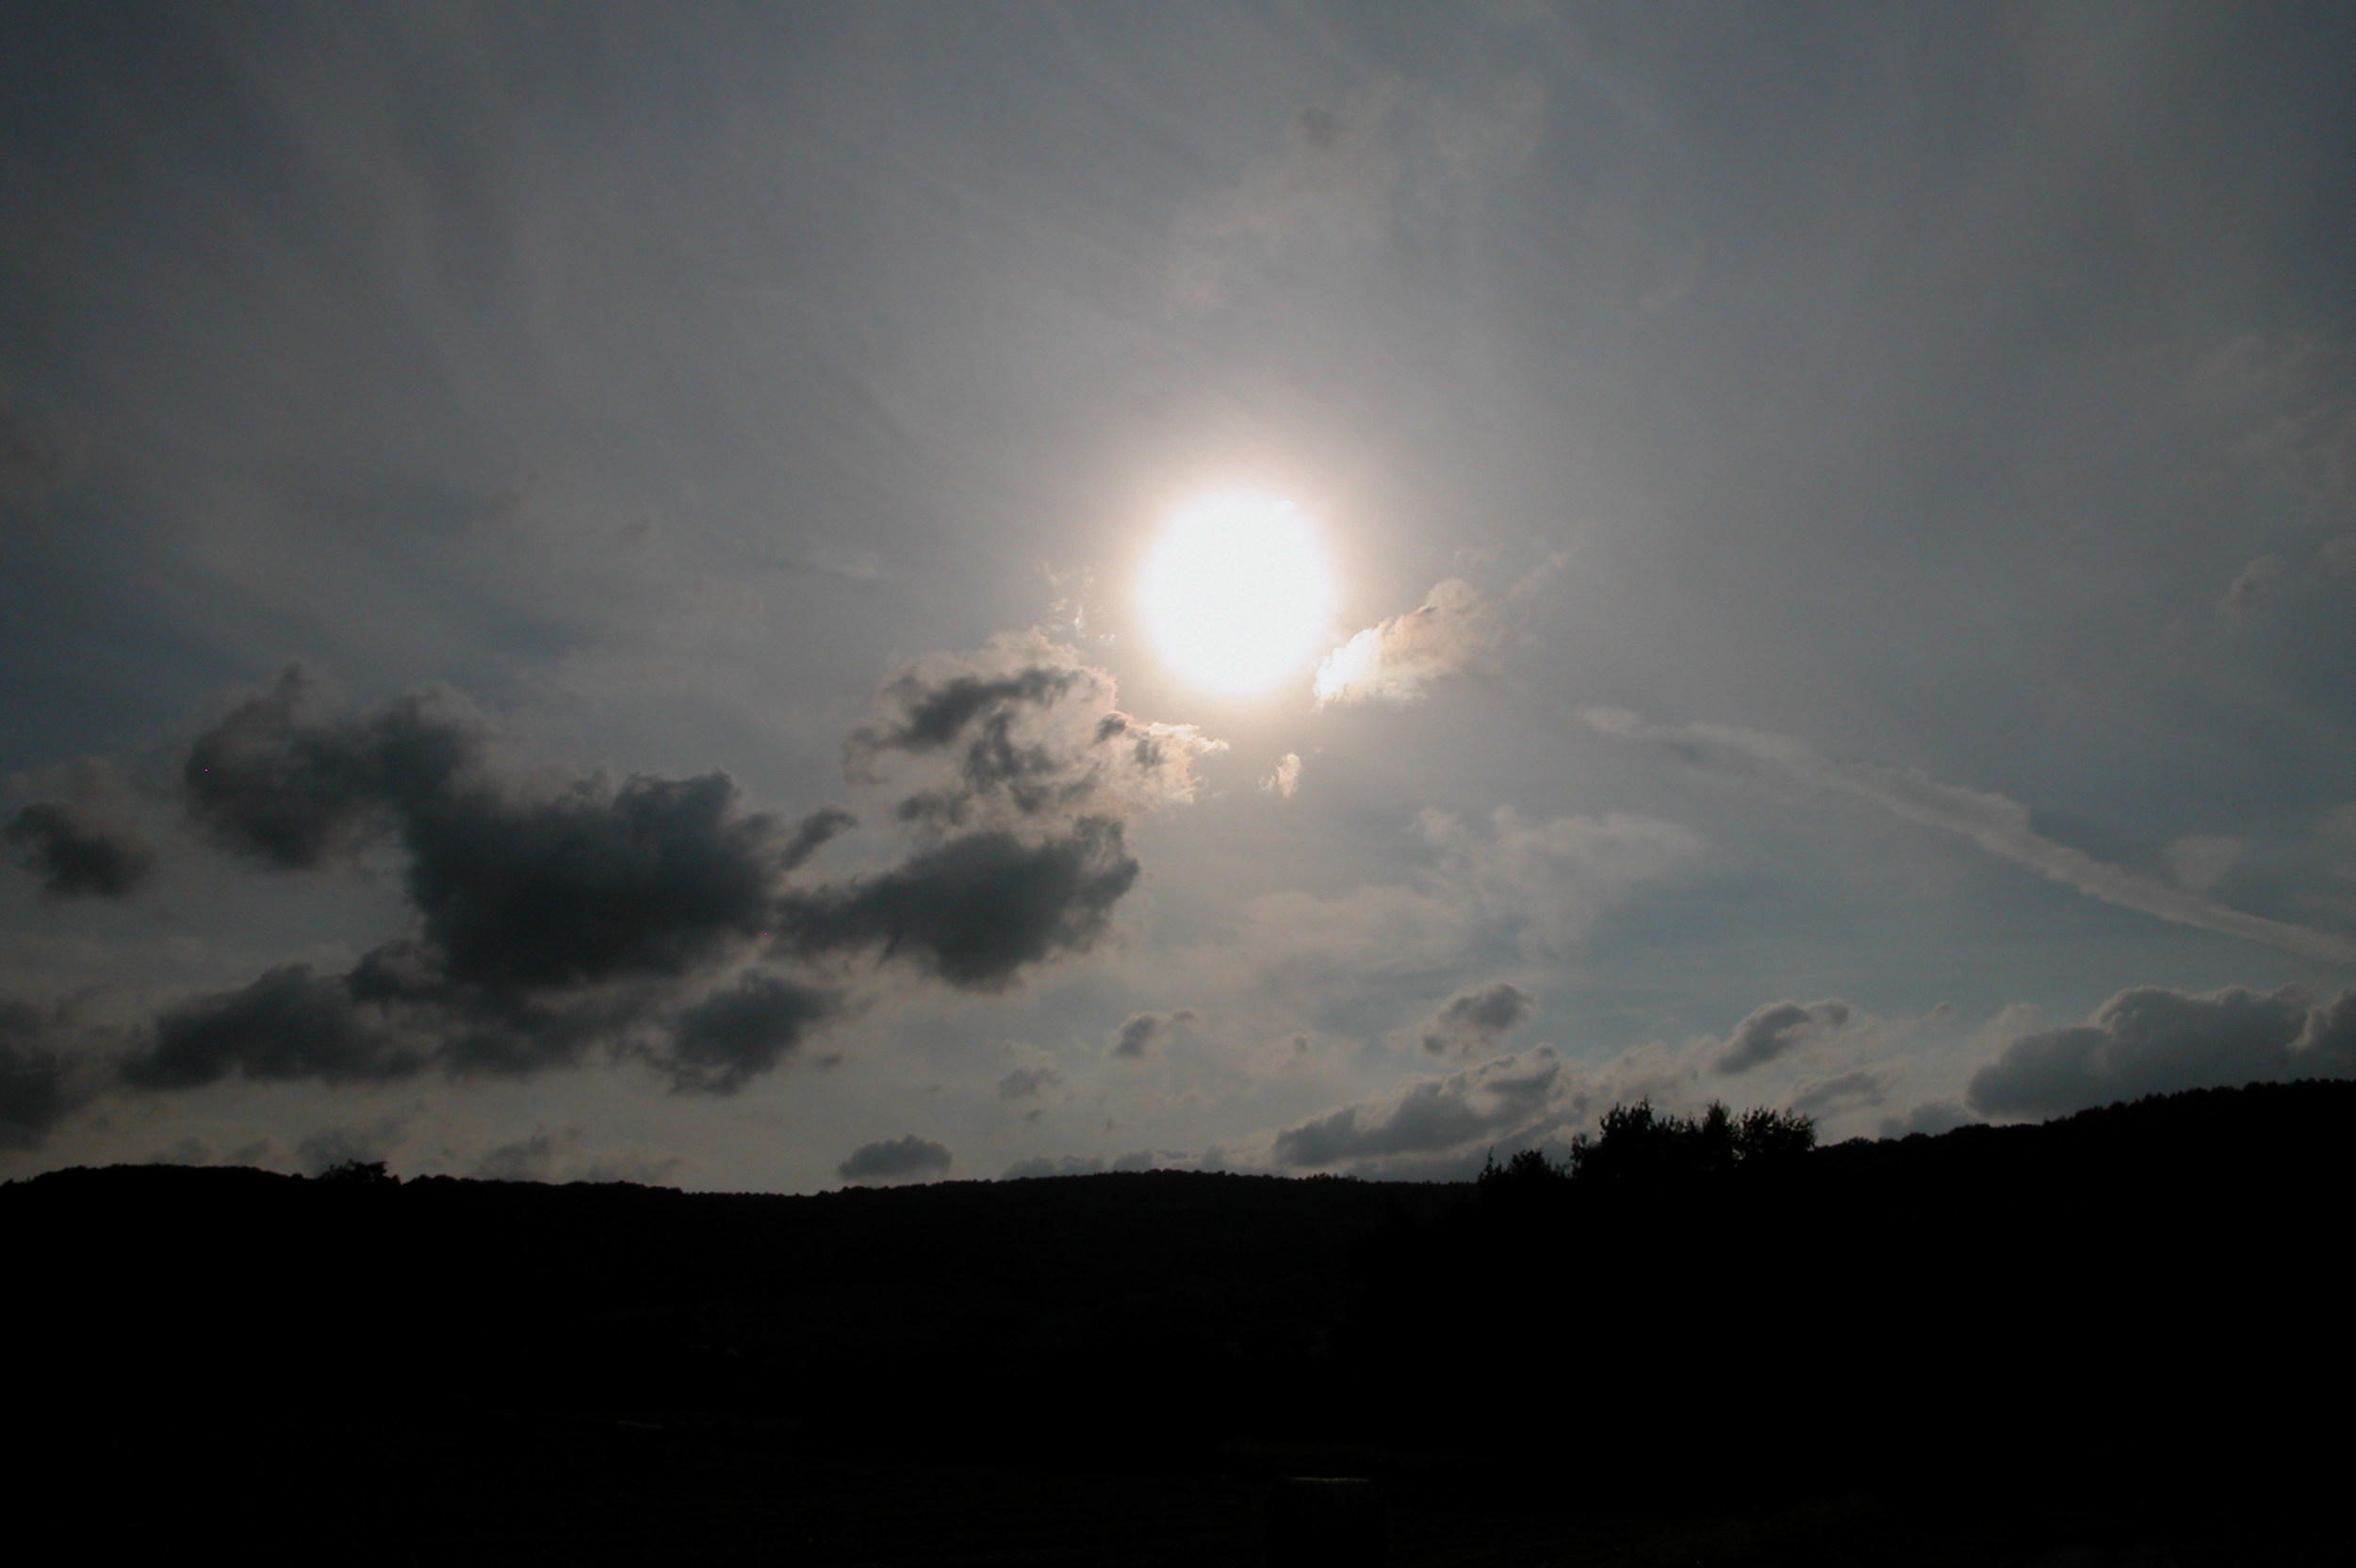 The sun at dusk. Image credit: Oliver Herold, CC BY 3.0